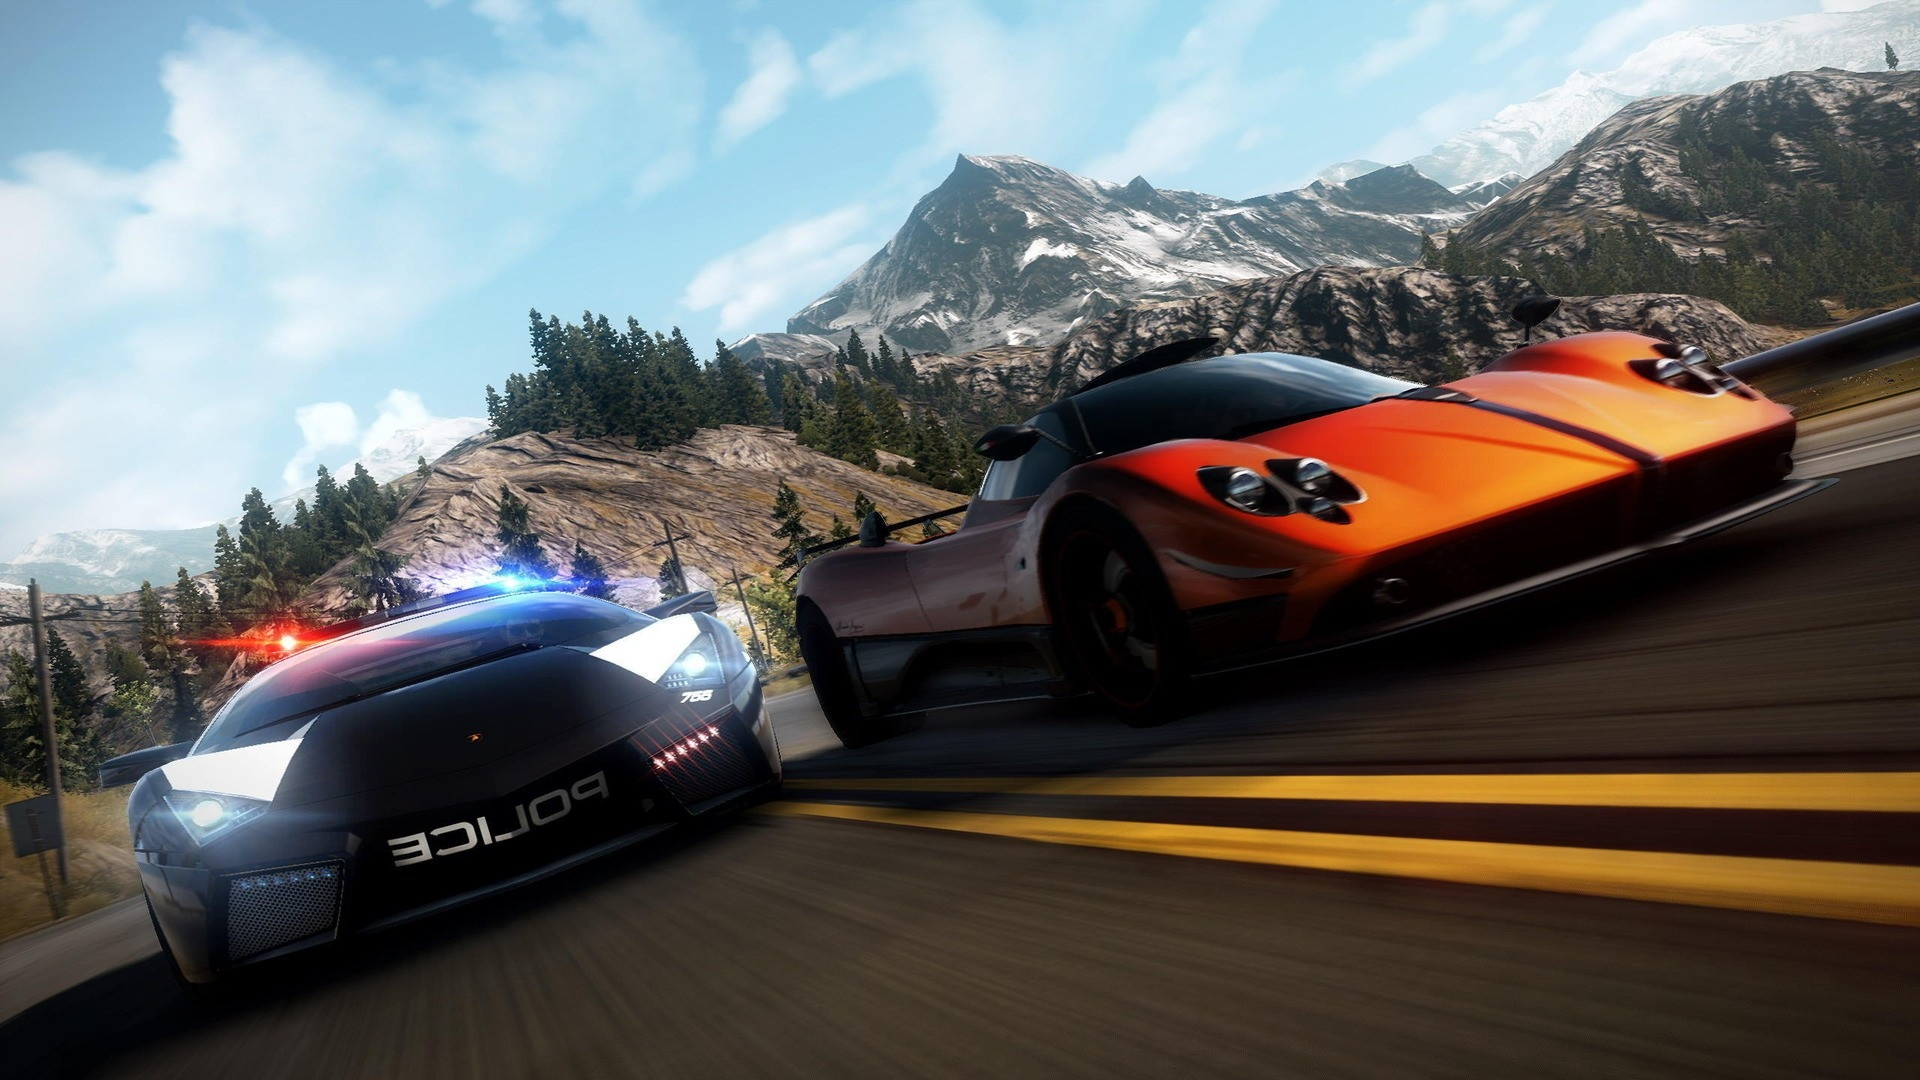 1920x1080-nfs-need-for-speed-police-road-mountain-sky-wallpaper-wpc9001046